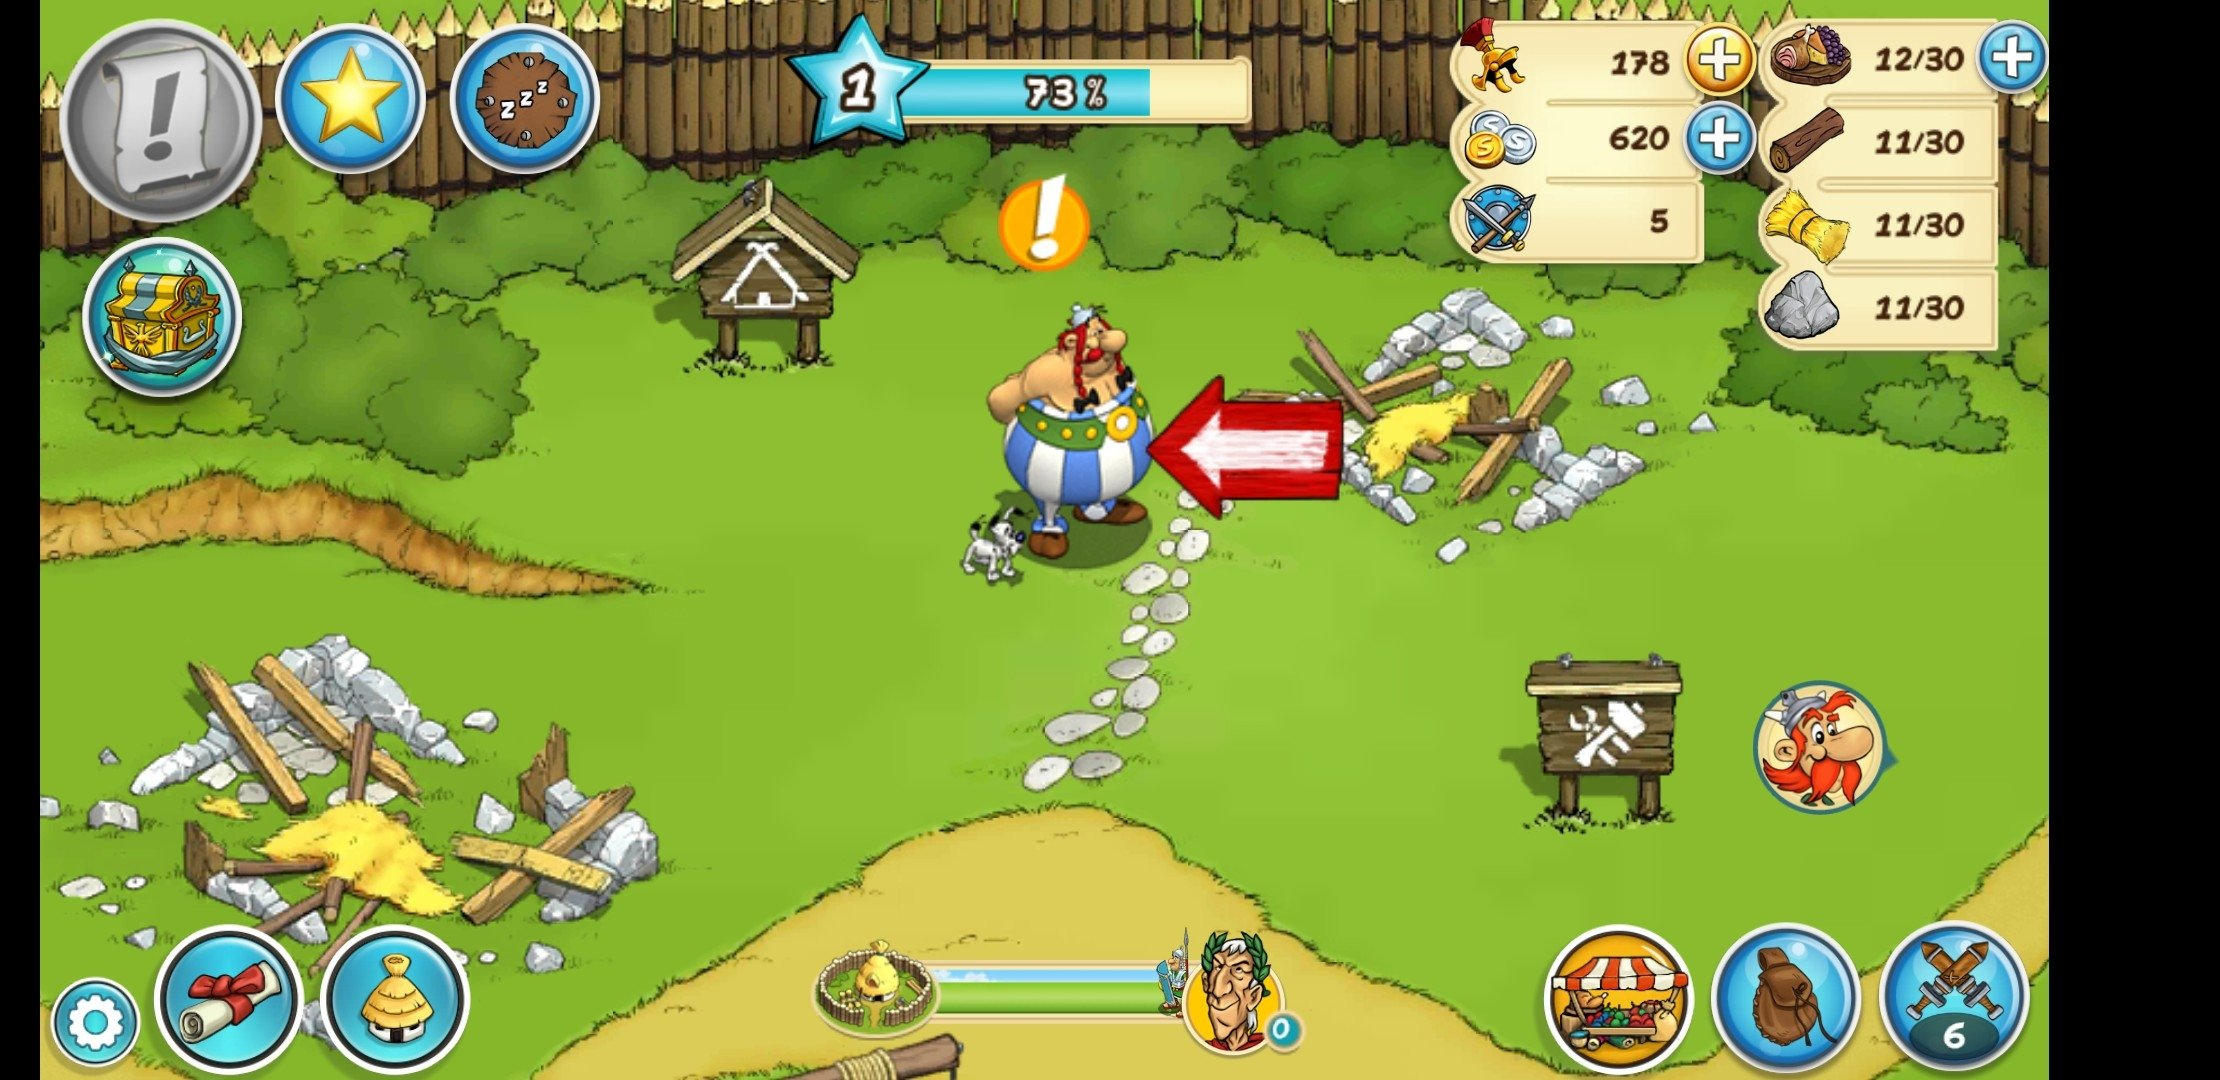 Asterix and Friends Android image 8